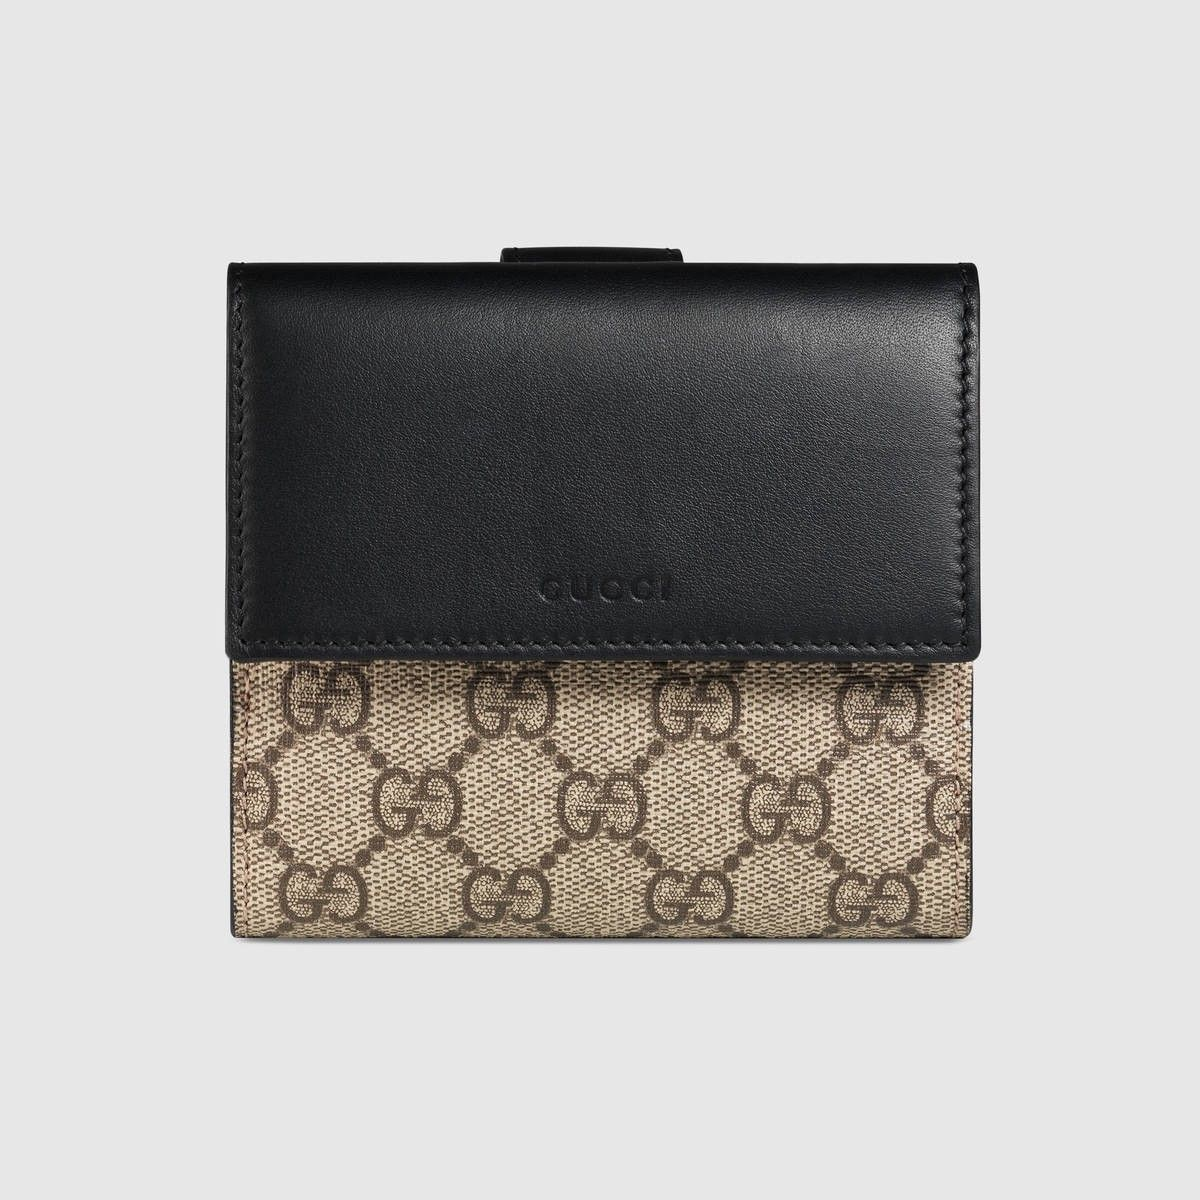 744cde30642 GUCCI. Gucci WalletFashion AccessoriesWomen AccessoriesSmall WalletSupremeBlack  LeatherCanvasesFrenchShopping